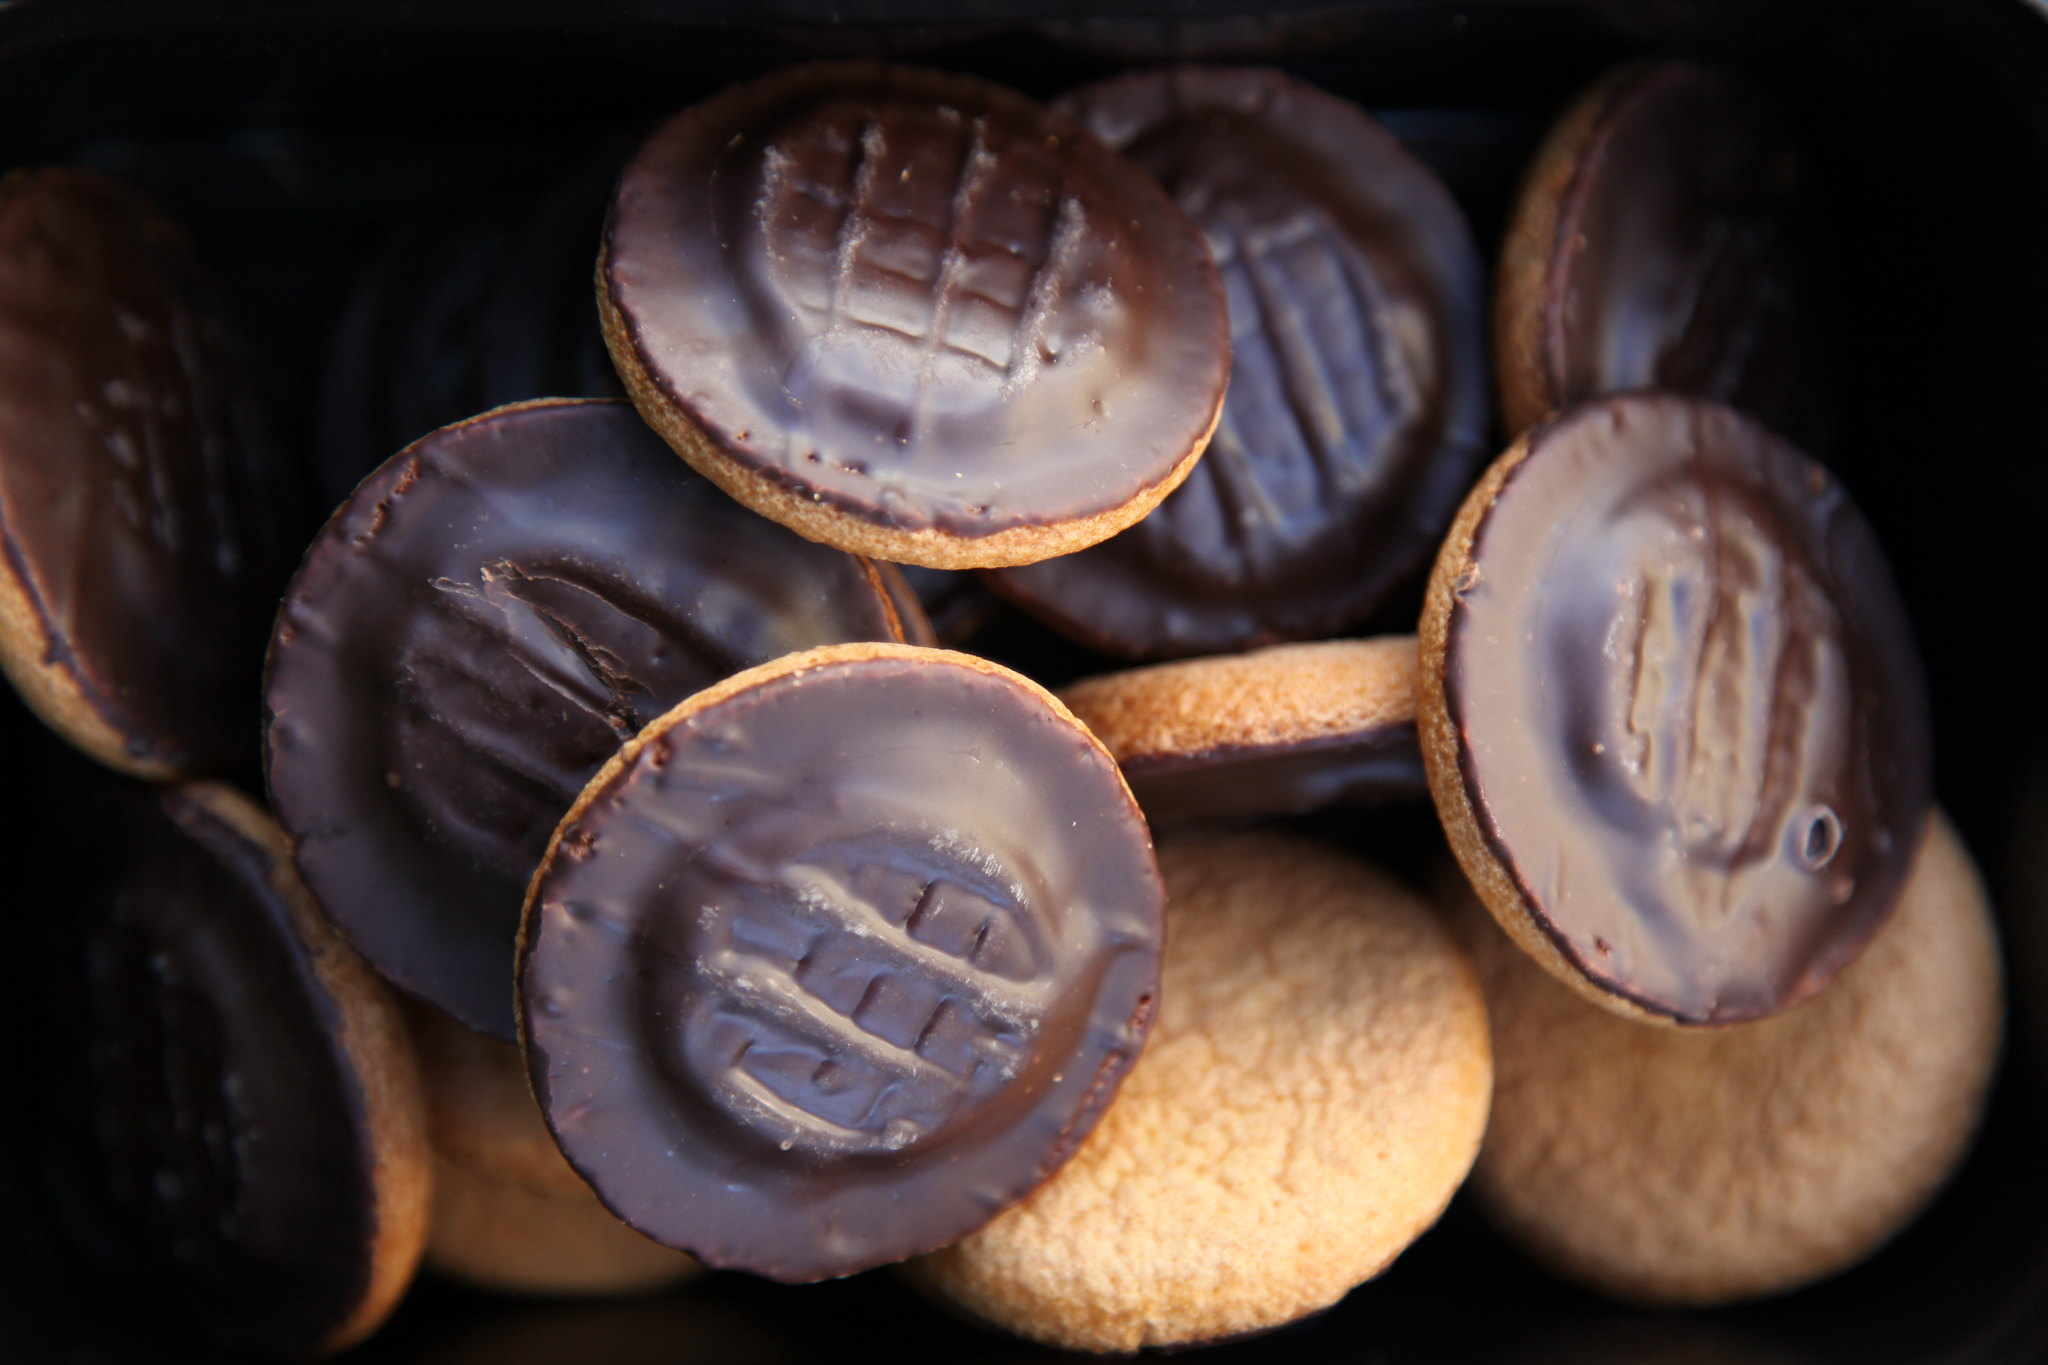 photo of jaffa cakes